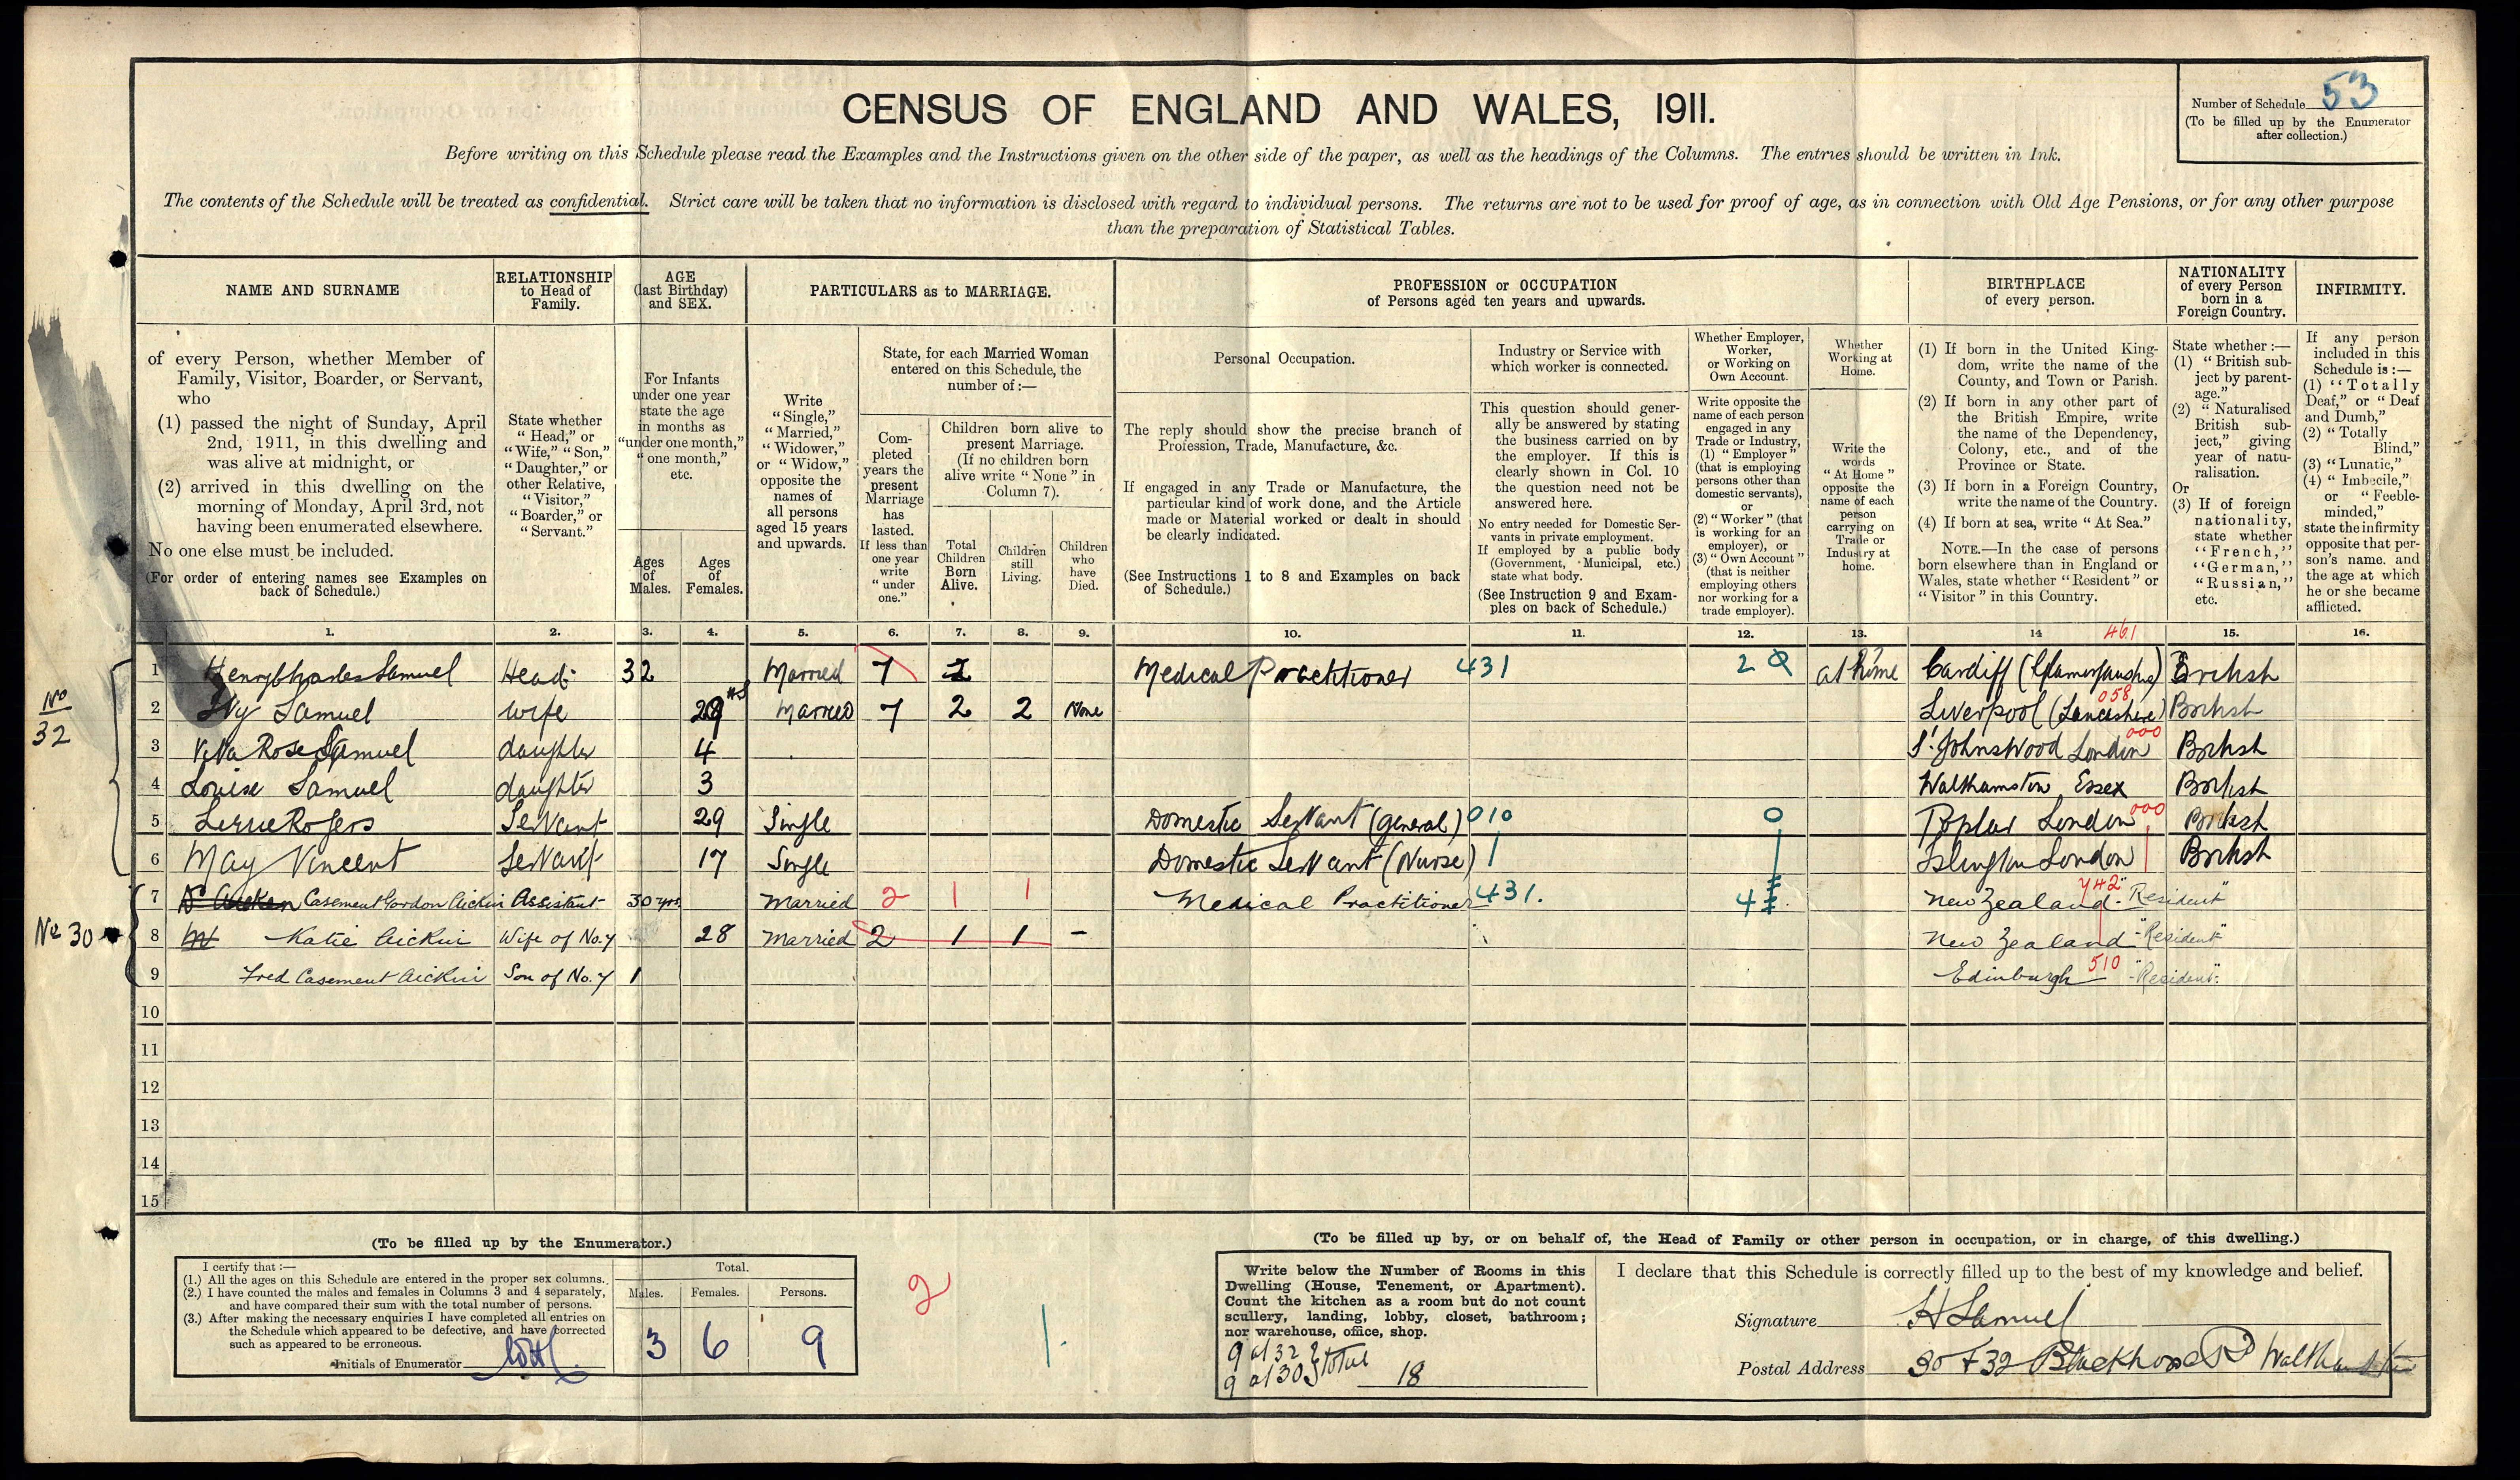 Henry Charles and Ivy Gertrude Samuel and family on 1911 census